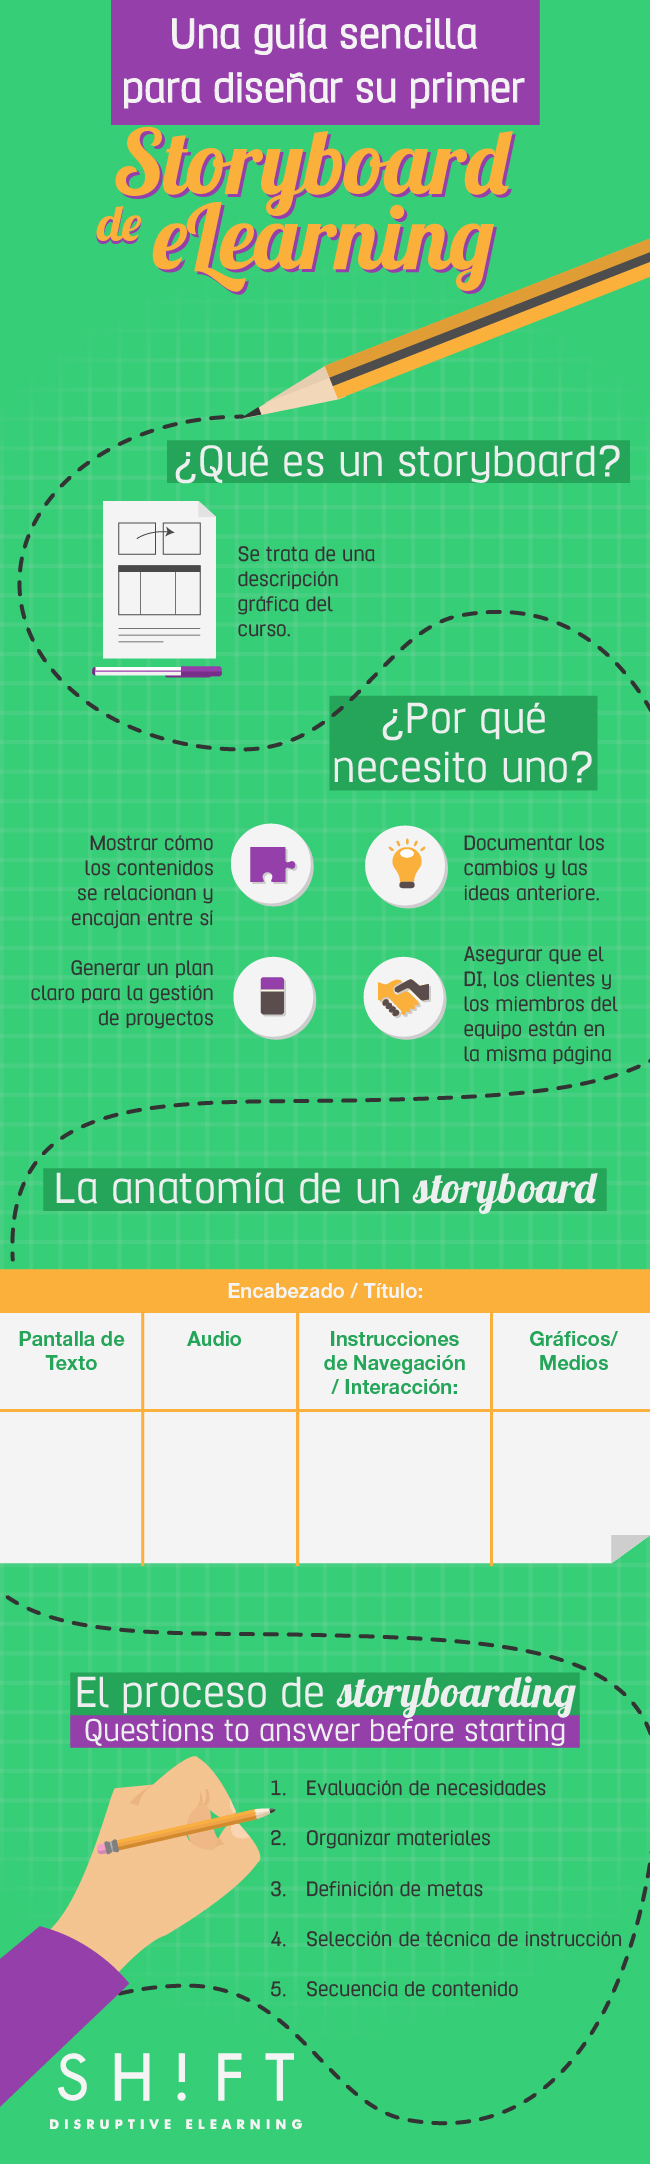 ESPANOL_A_Simple_Guide_to_Setting_Up_Your_First_eLearning_Storyboard_v4-01